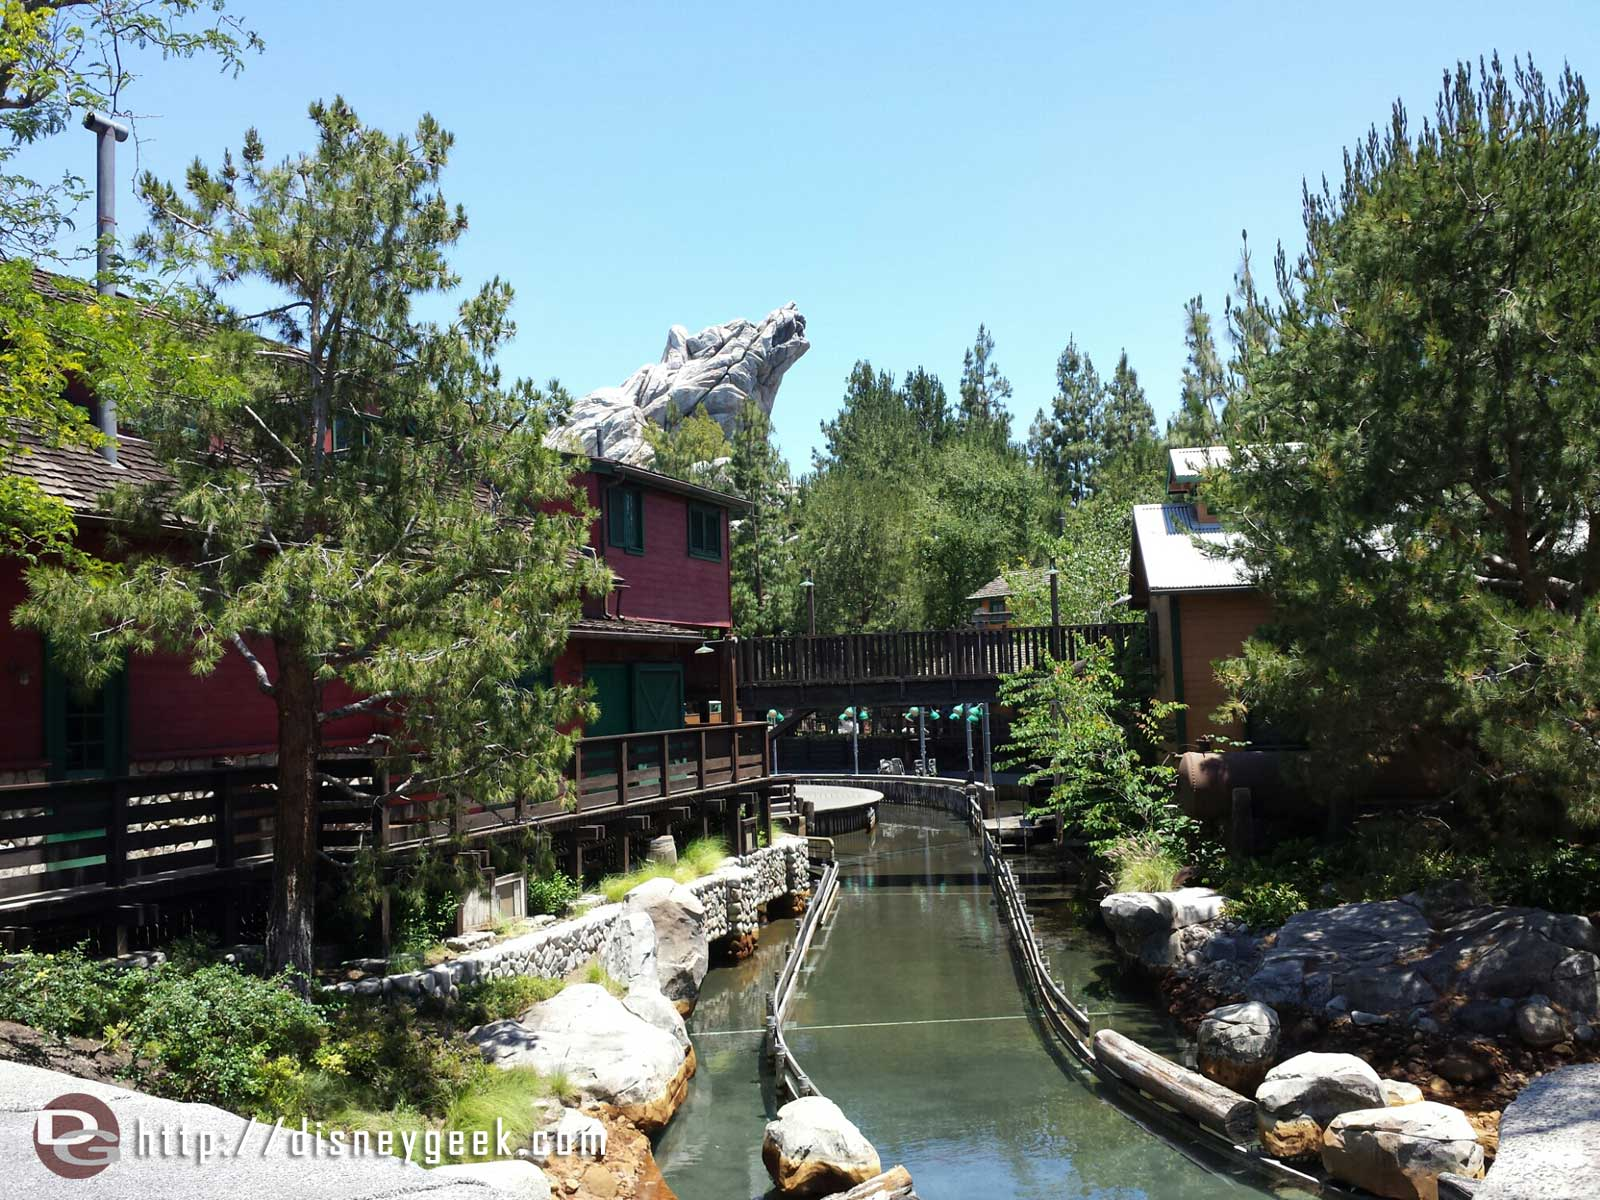 Grizzly River Run reopens next week.  This week some water in the flume.